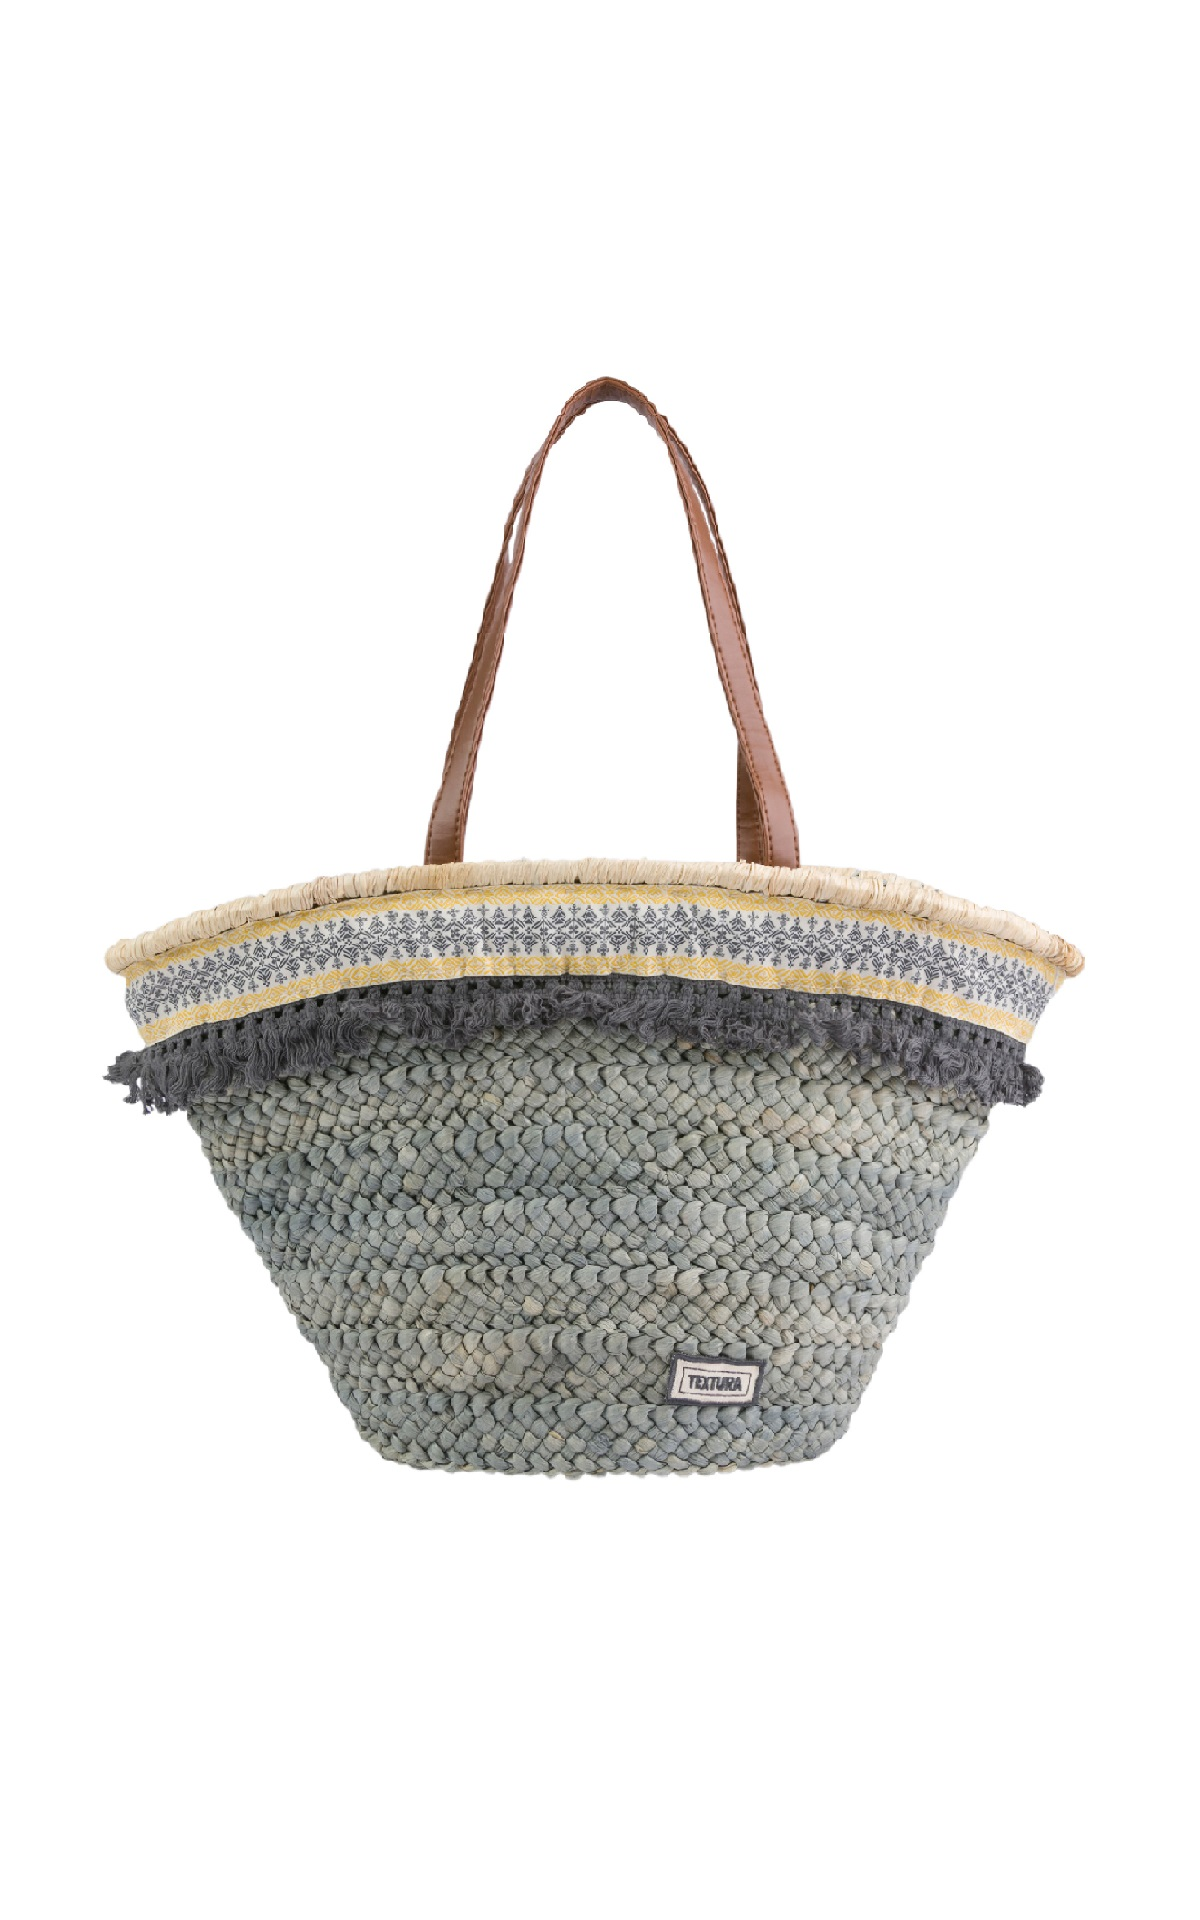 Gray wicker carrycot for woman Textura